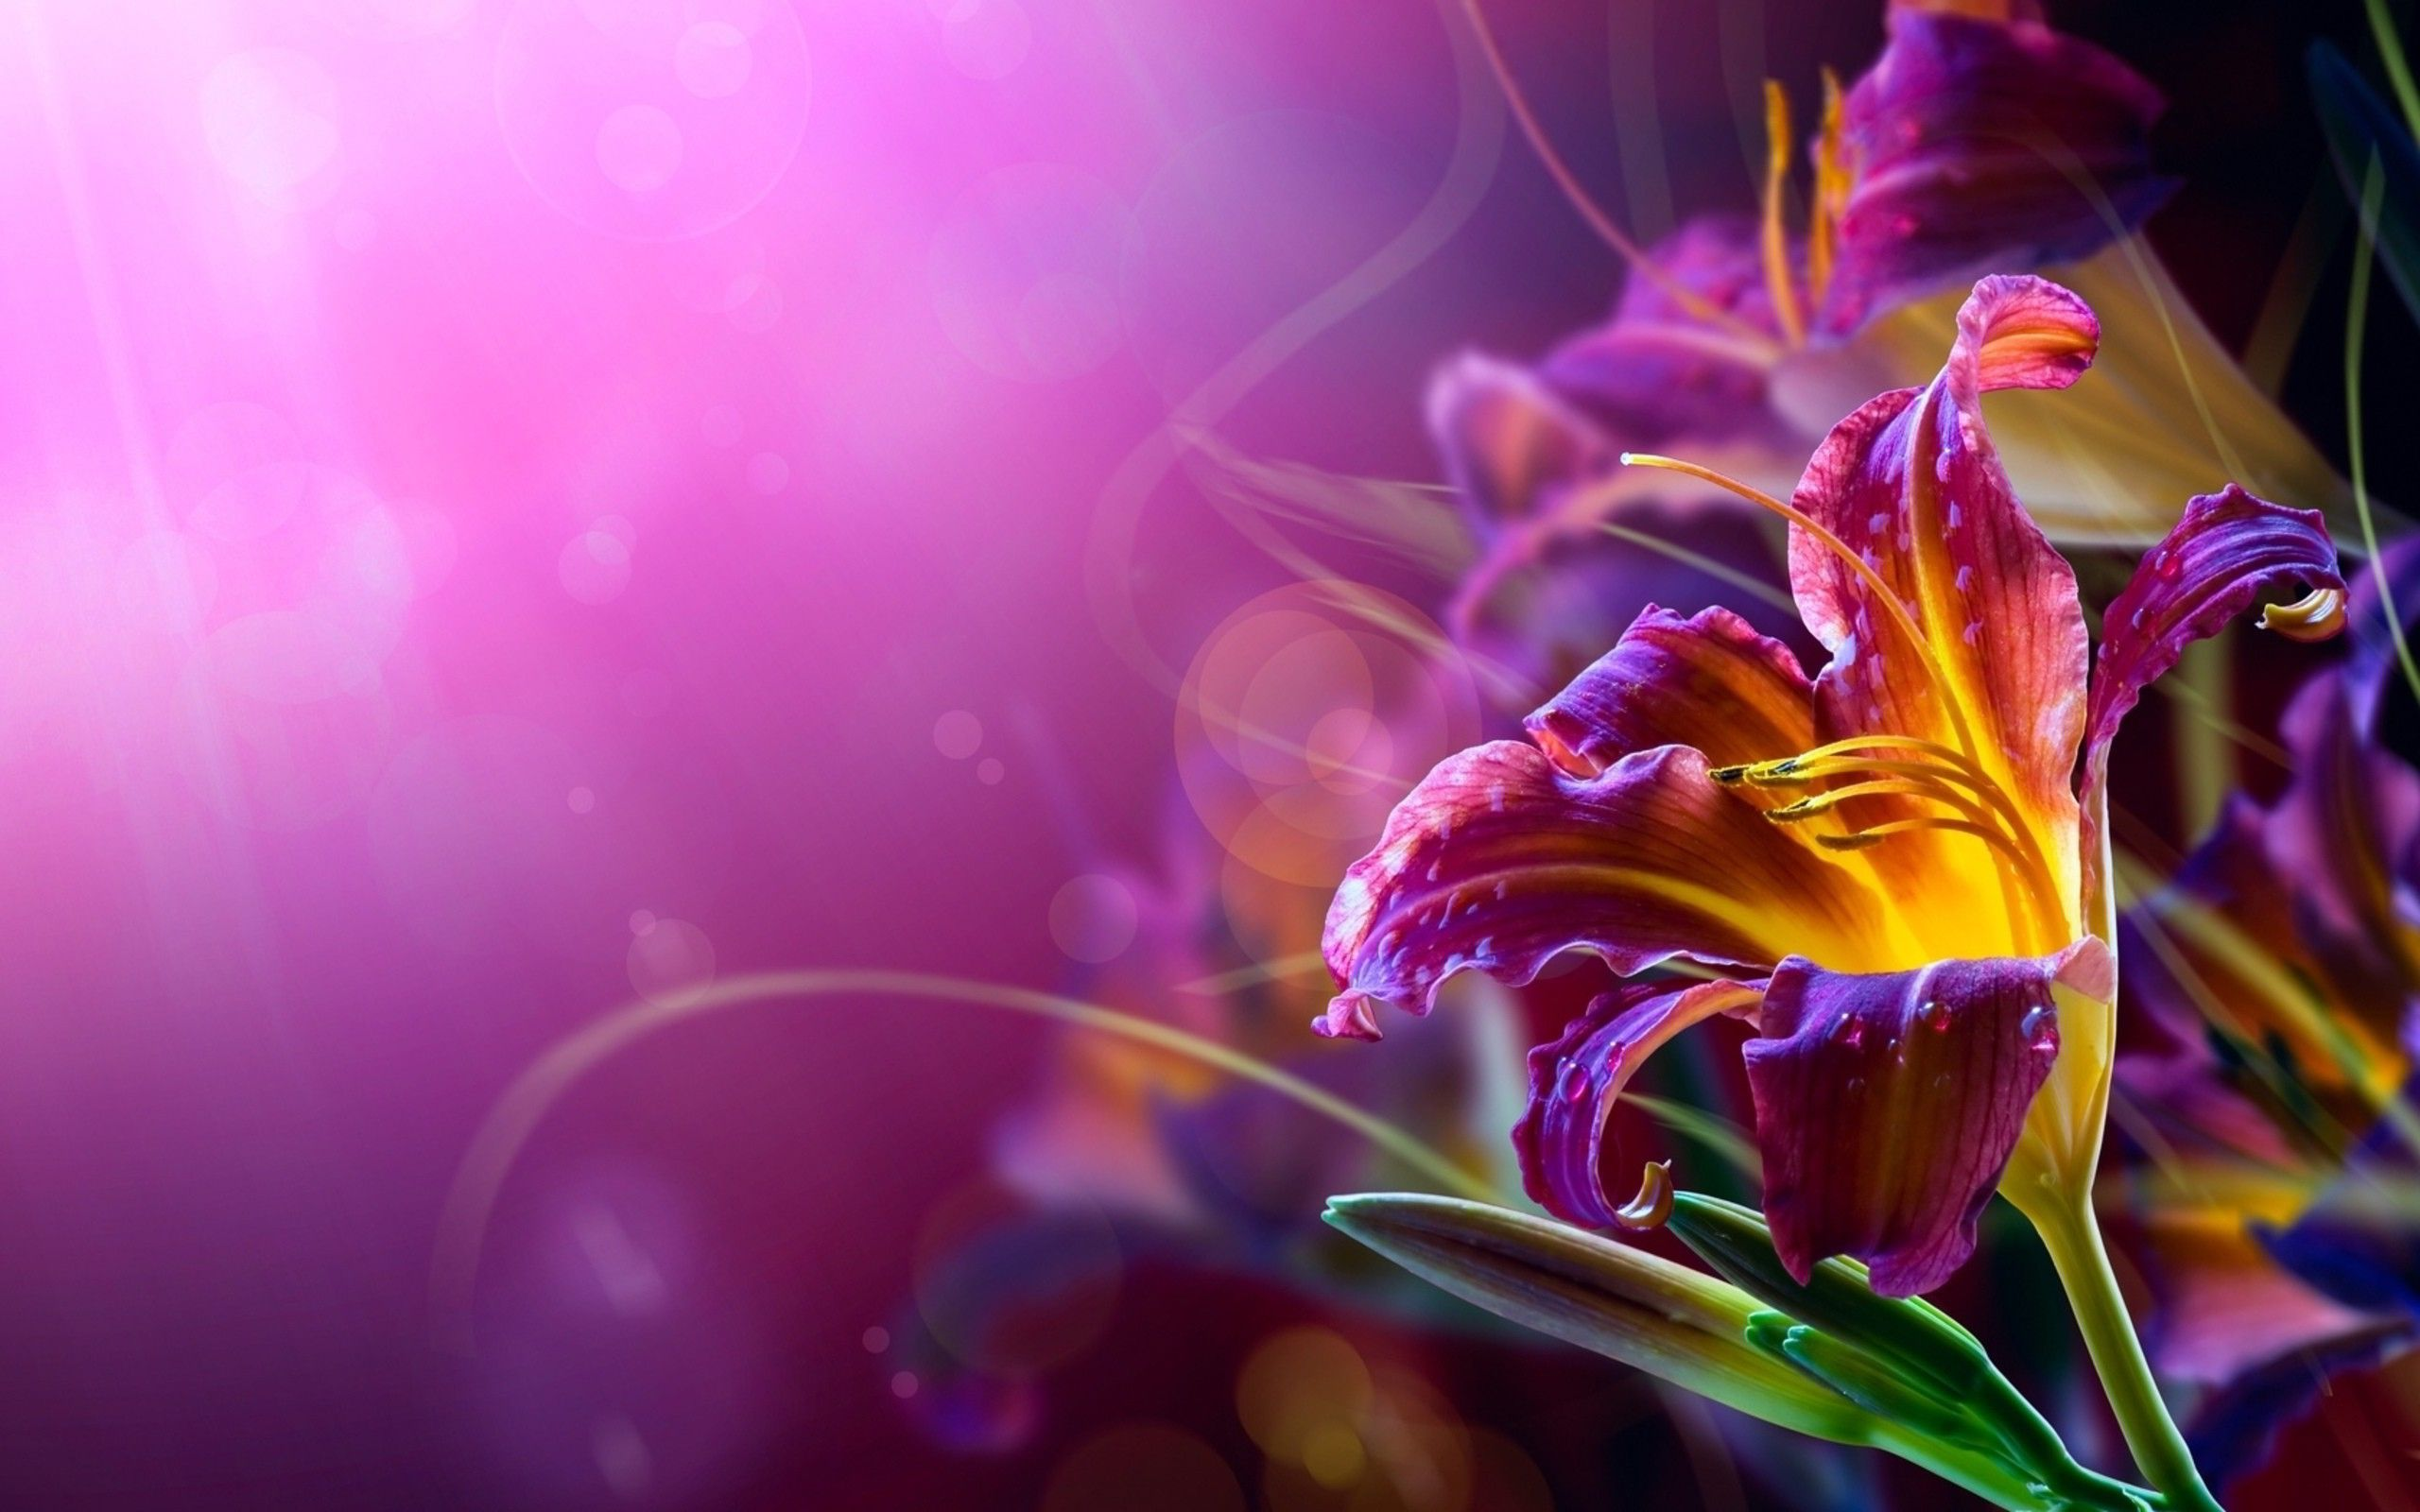 Abstract Floral Desktop Wallpapers Top Free Abstract